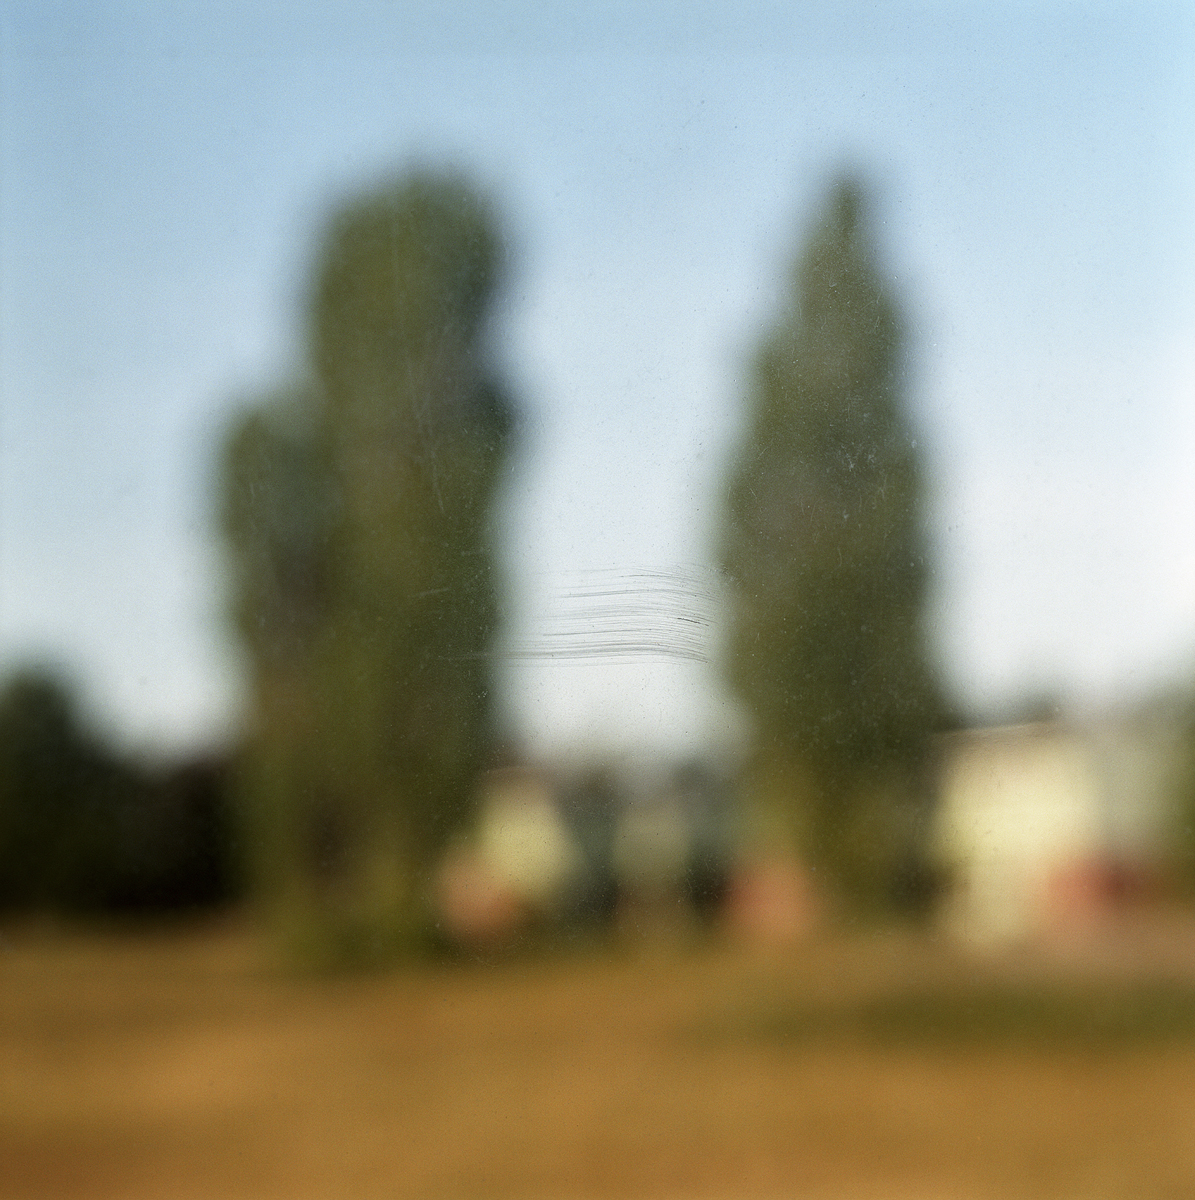 4. Untitled (Window Streak). 2005. Archival Pigment Print.